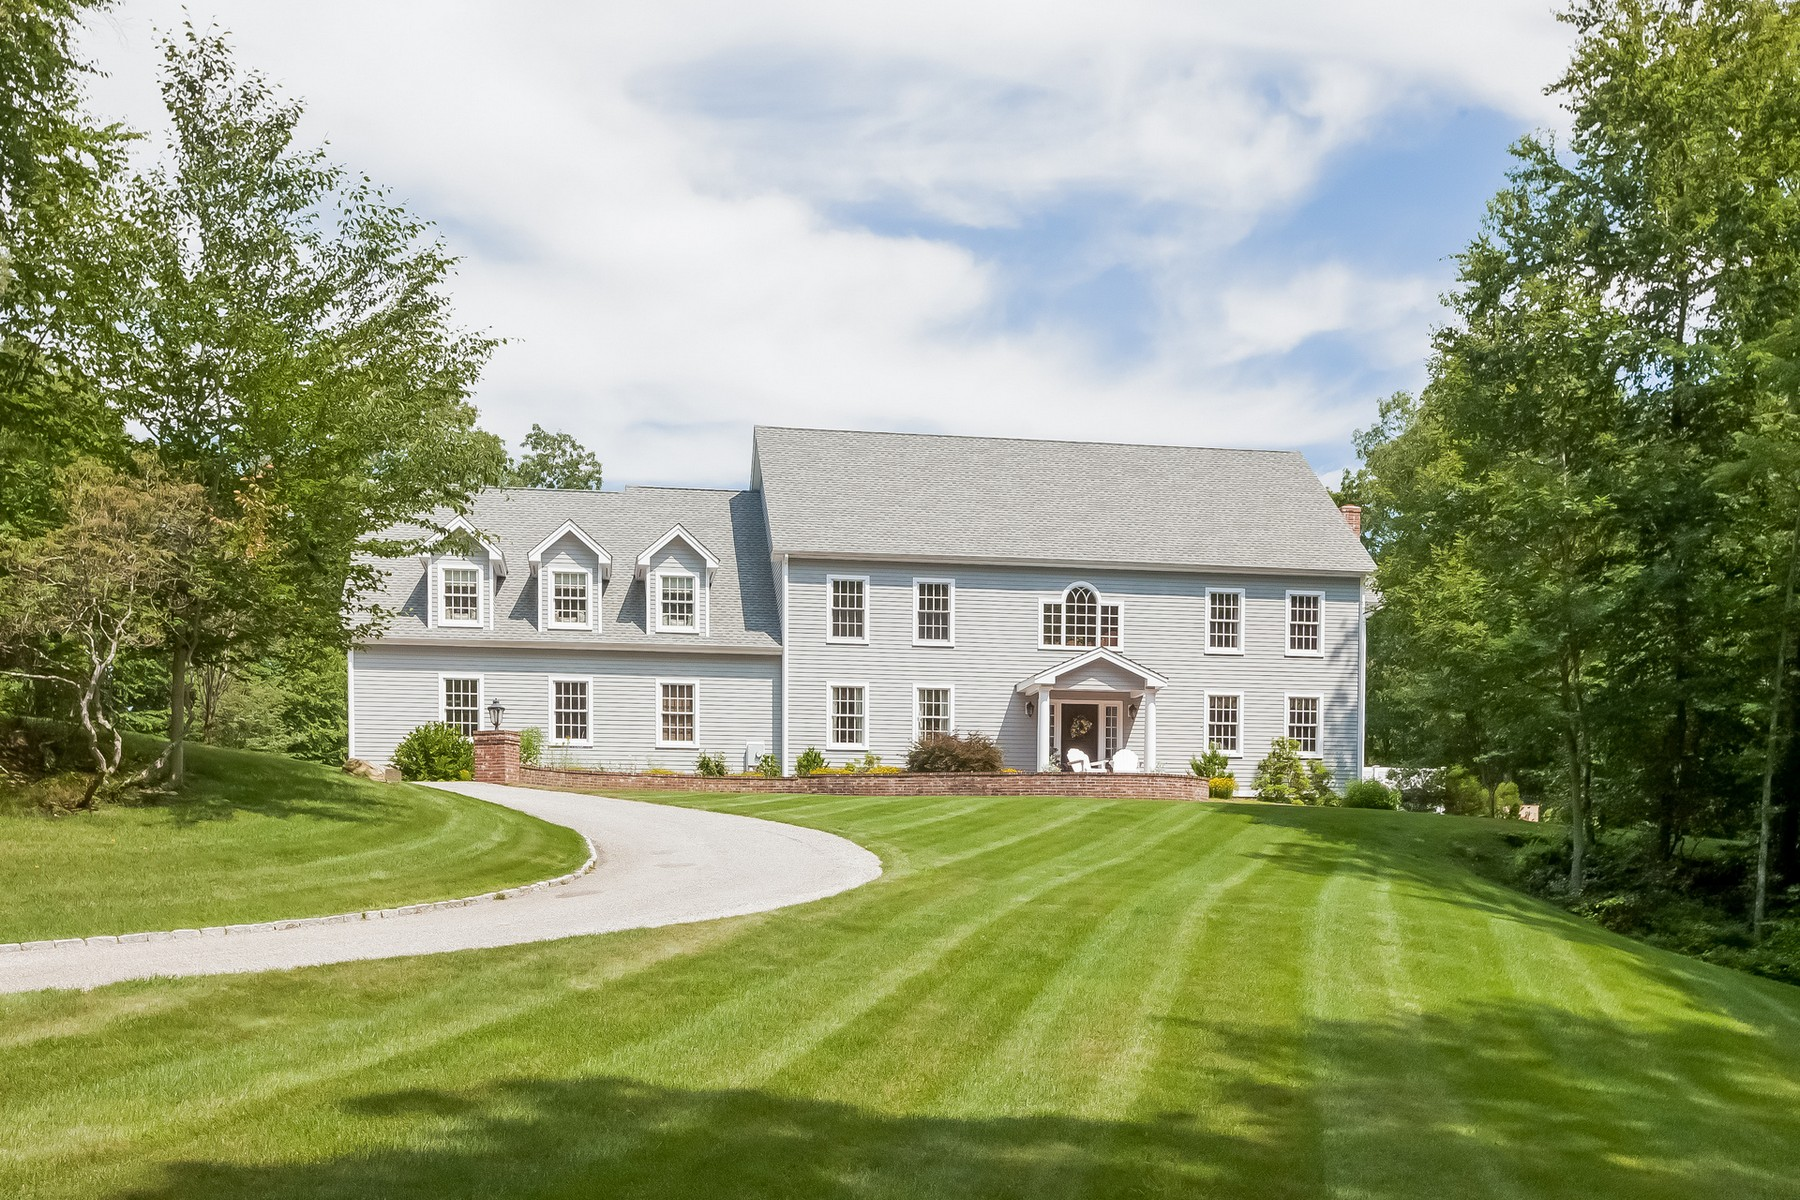 Property For Sale at Immaculate Colonial on 7.4 Acres